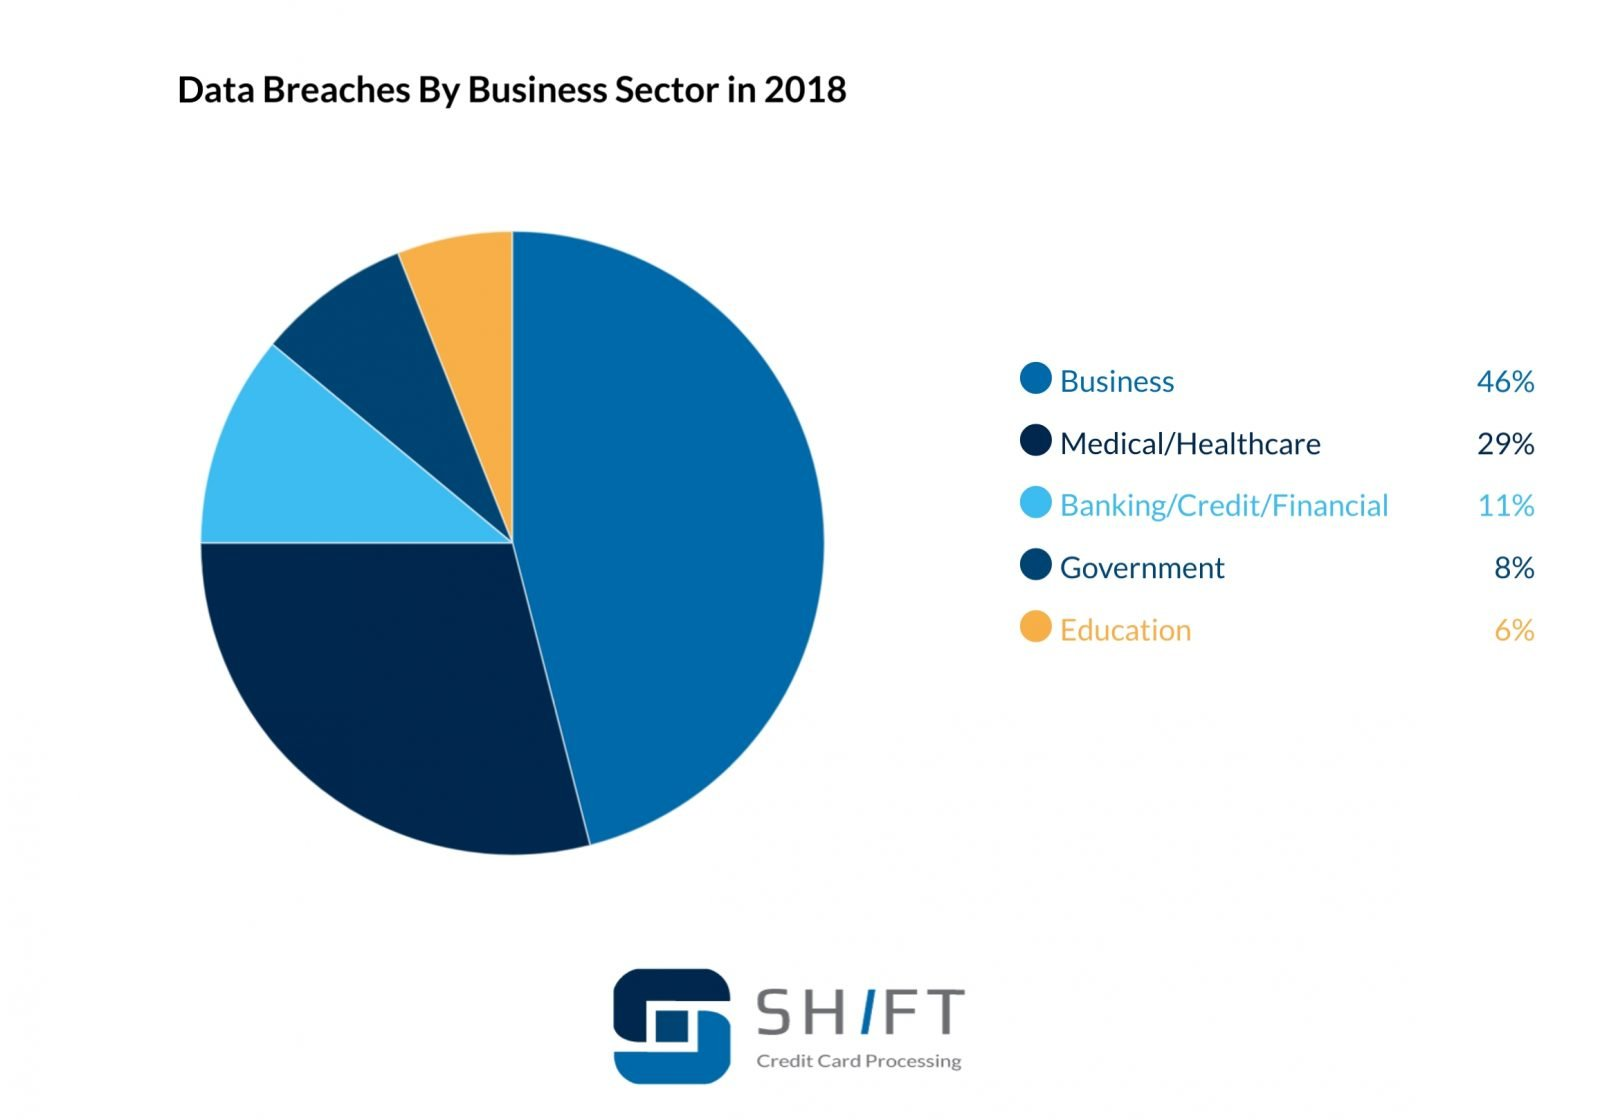 pie chart showing data breeches by business sector